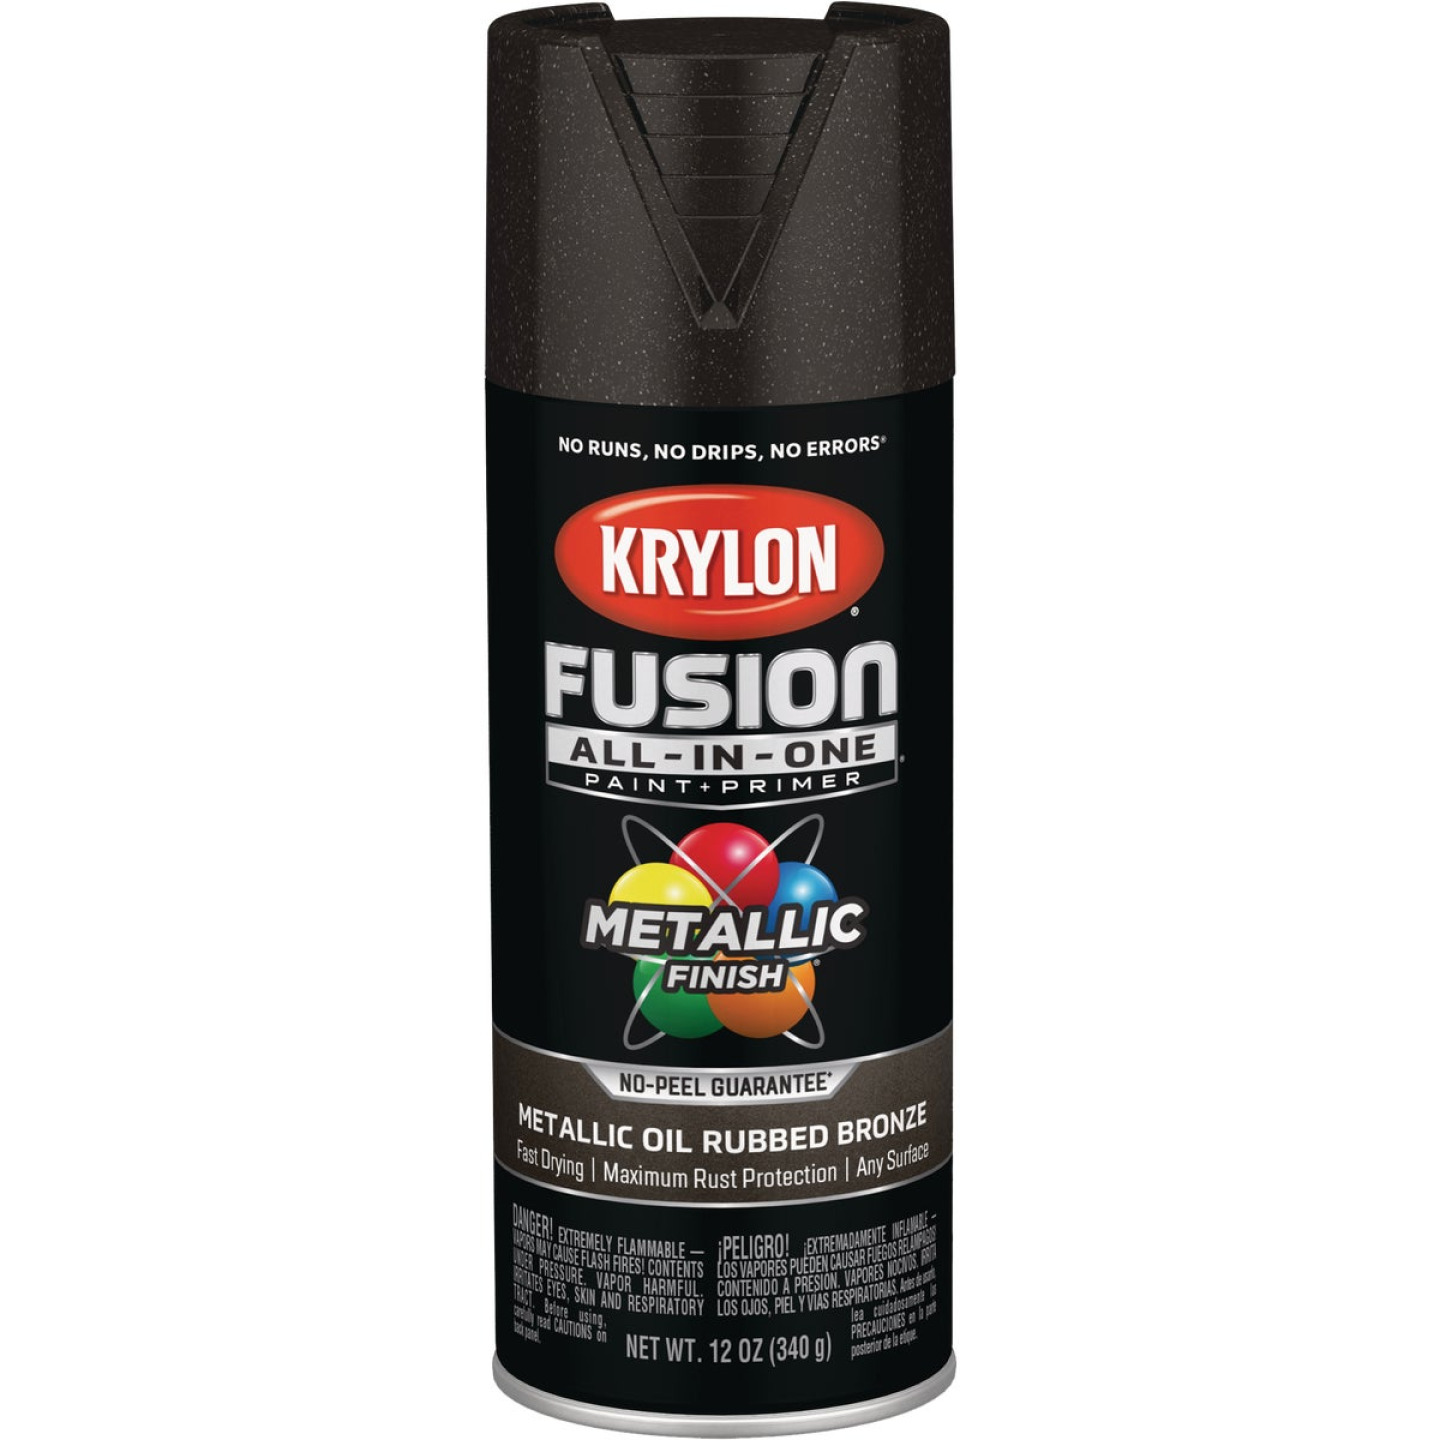 Krylon Fusion All-In-One Metallic Spray Paint & Primer, Oil Rubbed Bronze Image 1